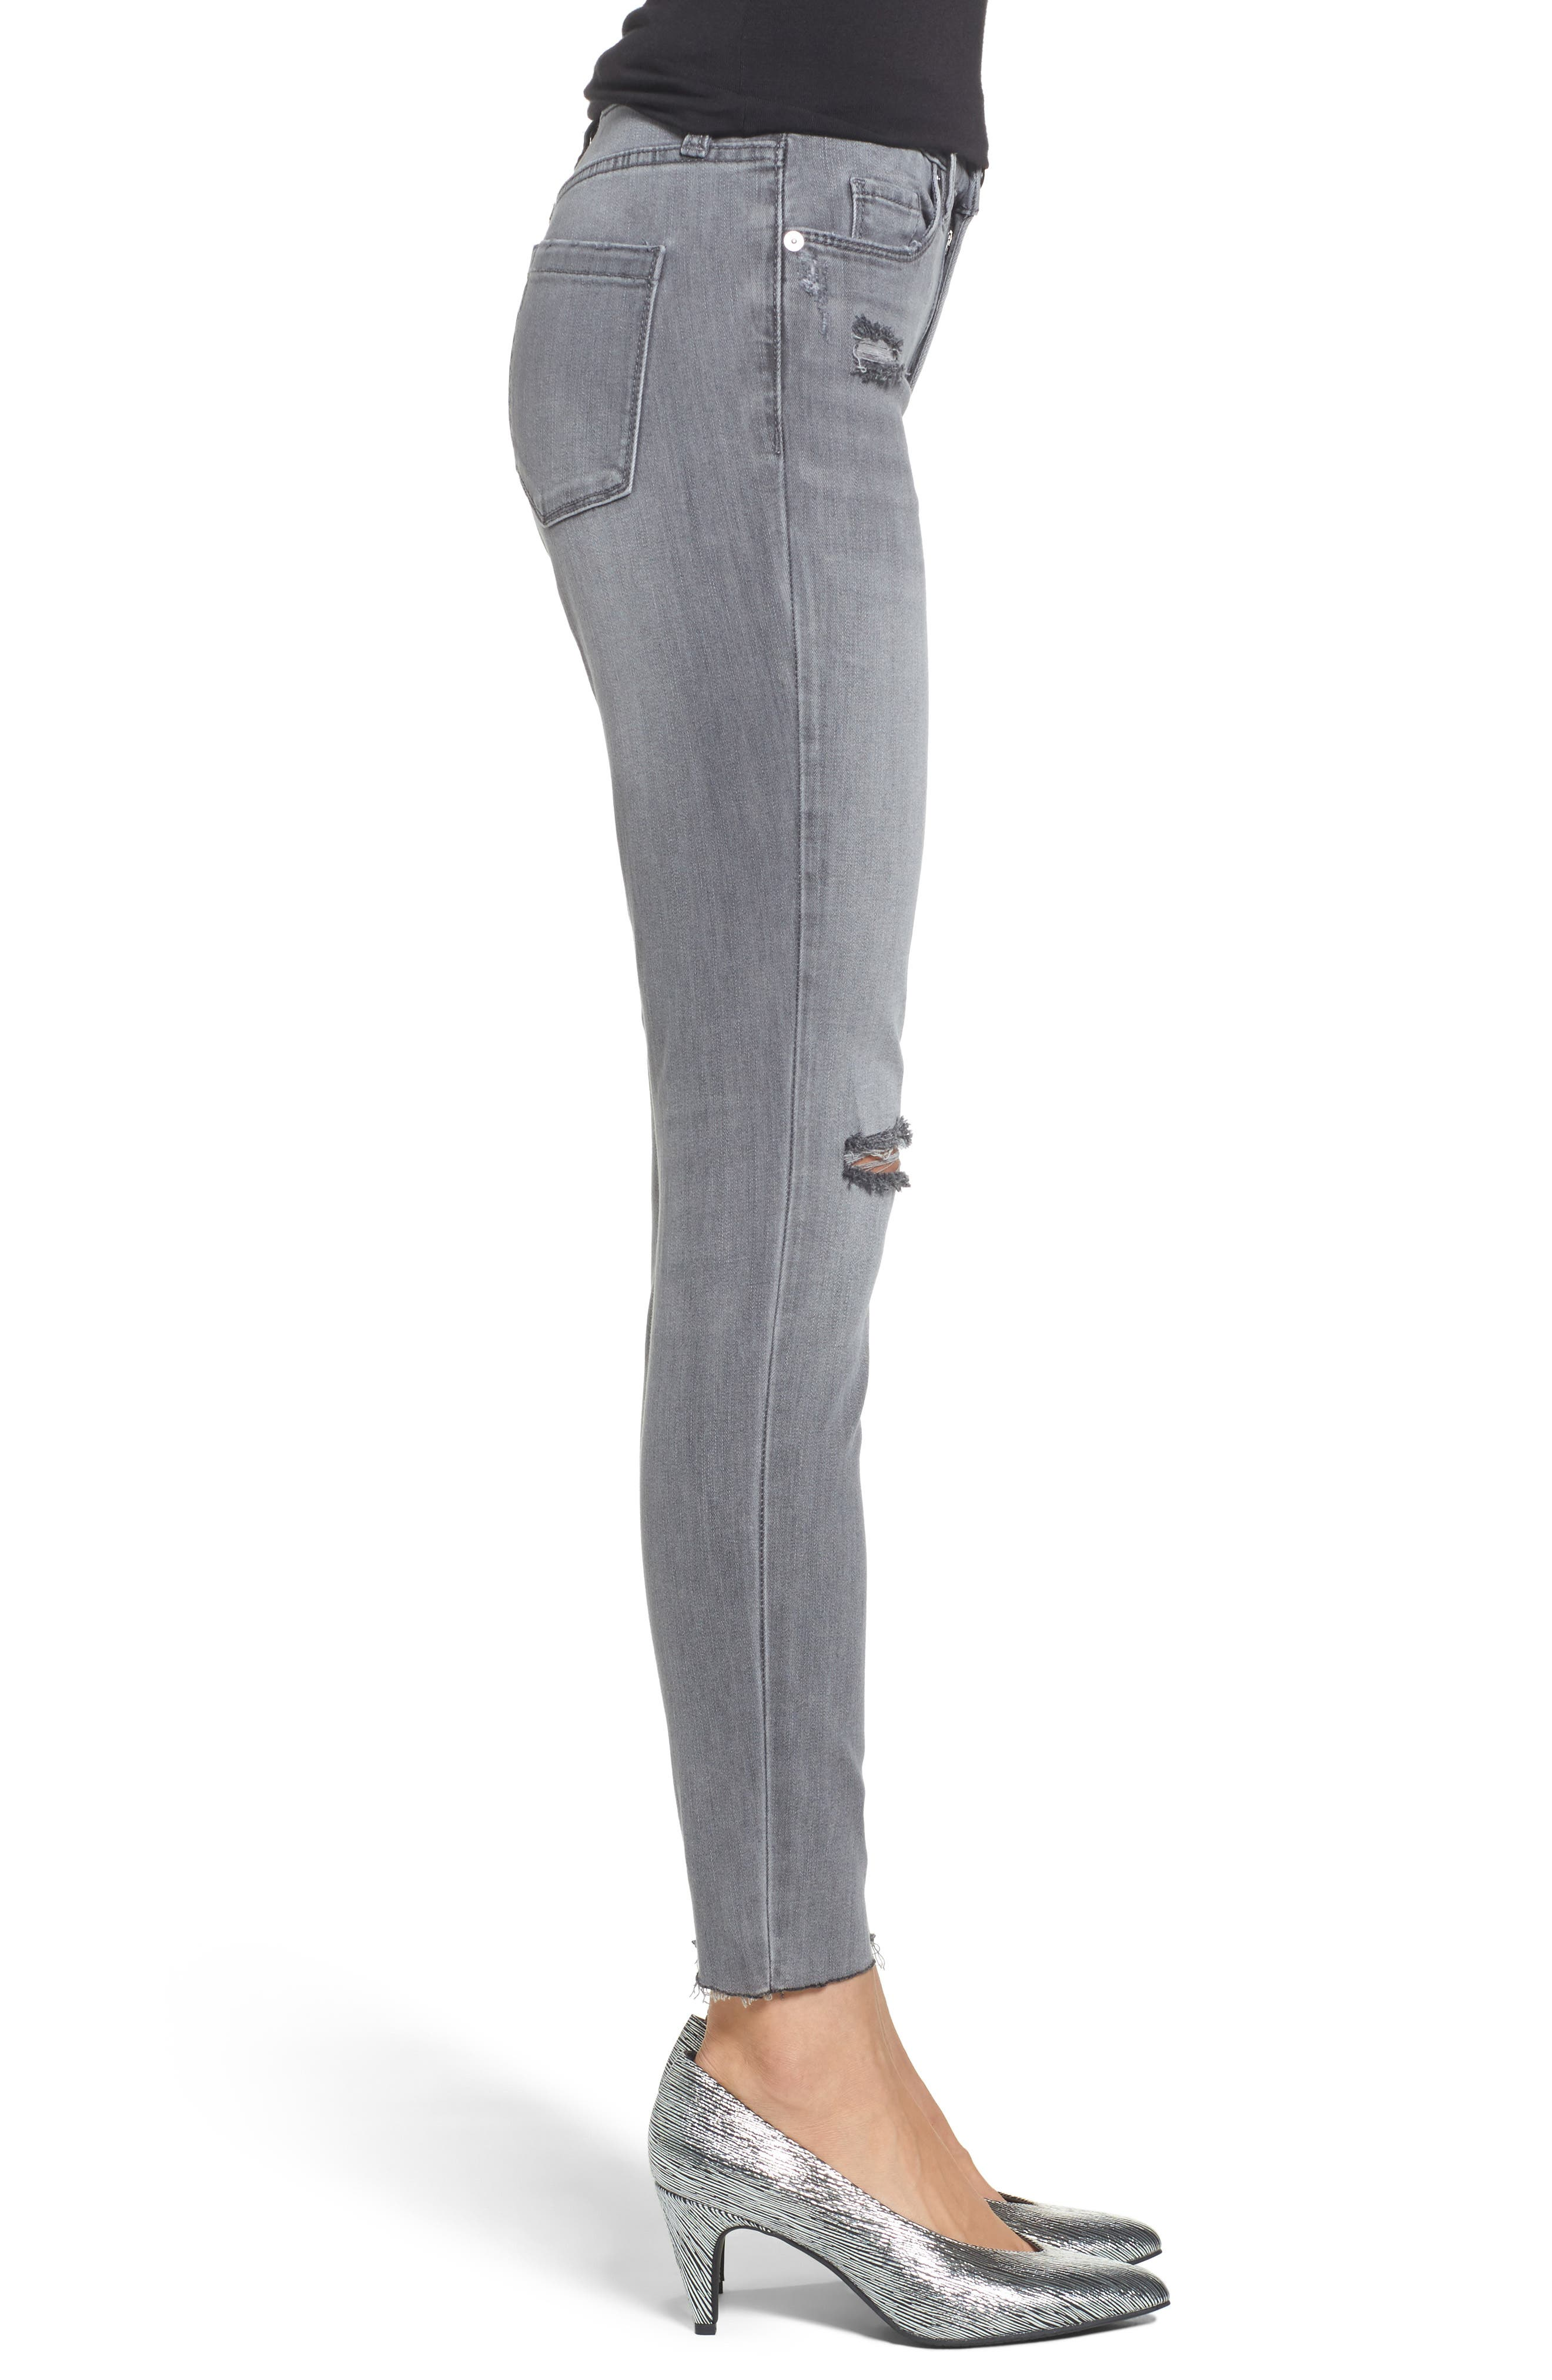 Tequila Royale Skinny Jeans,                             Alternate thumbnail 3, color,